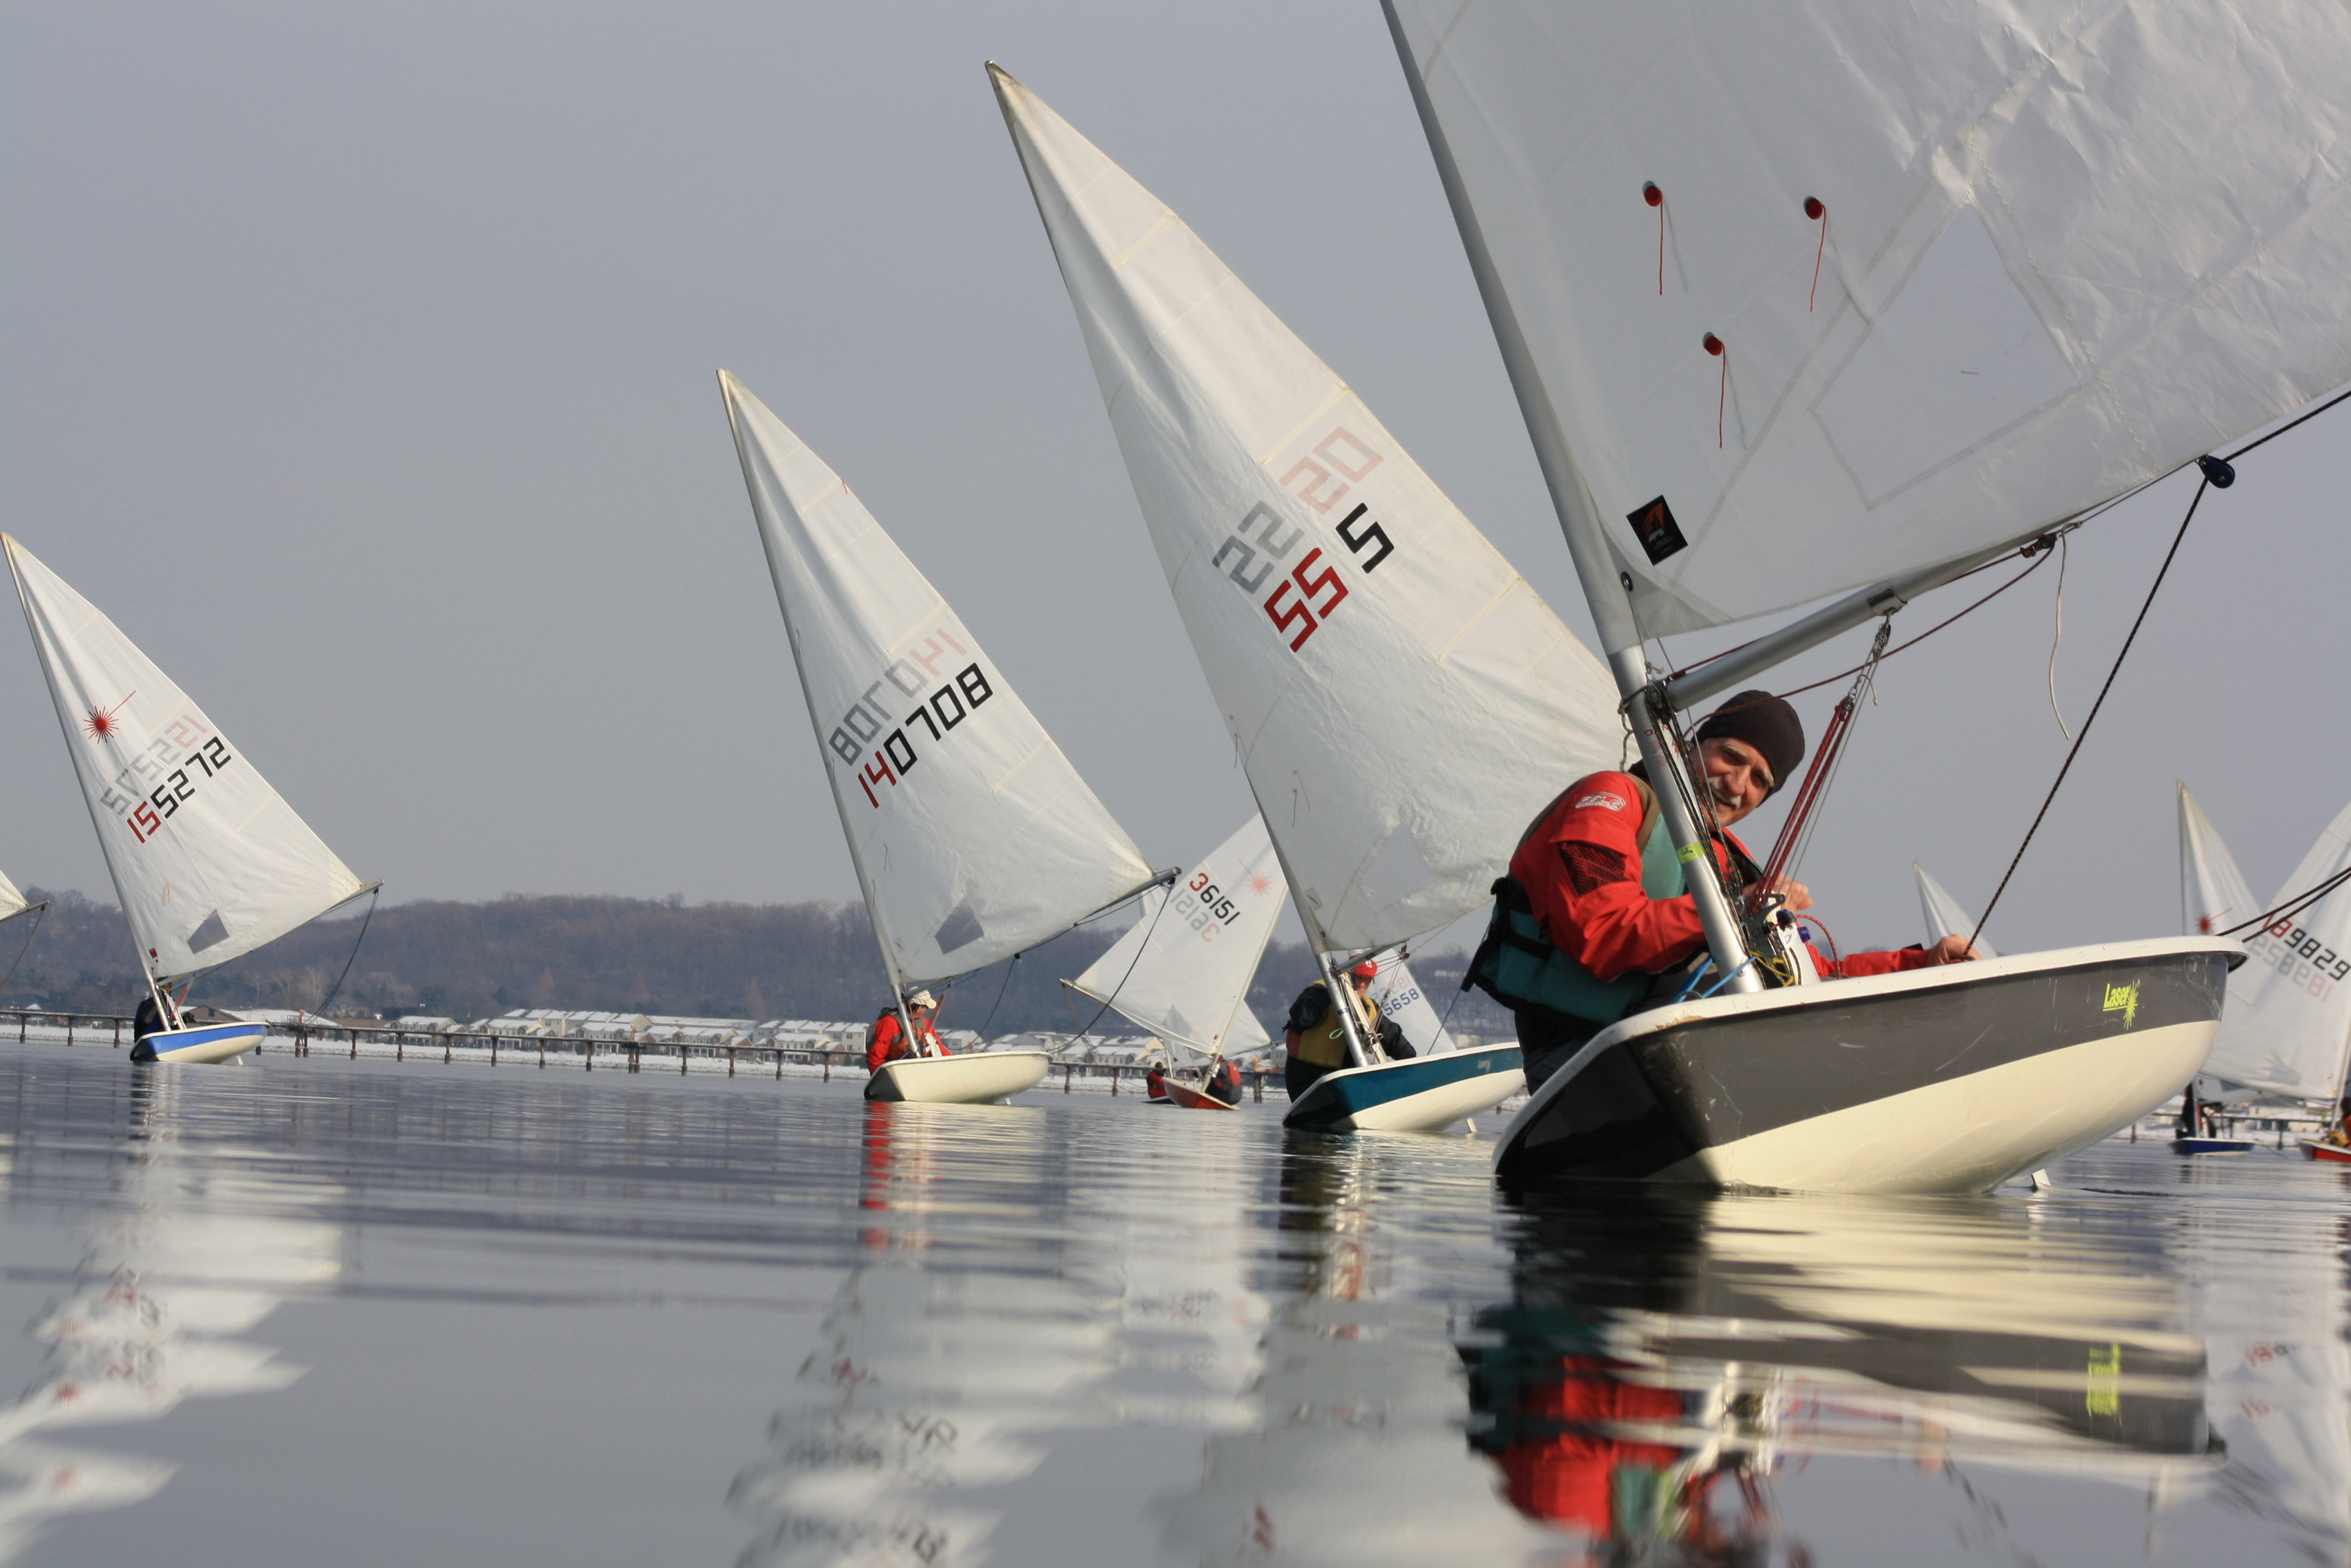 Lasers ghosting downwind during a Frostbite race